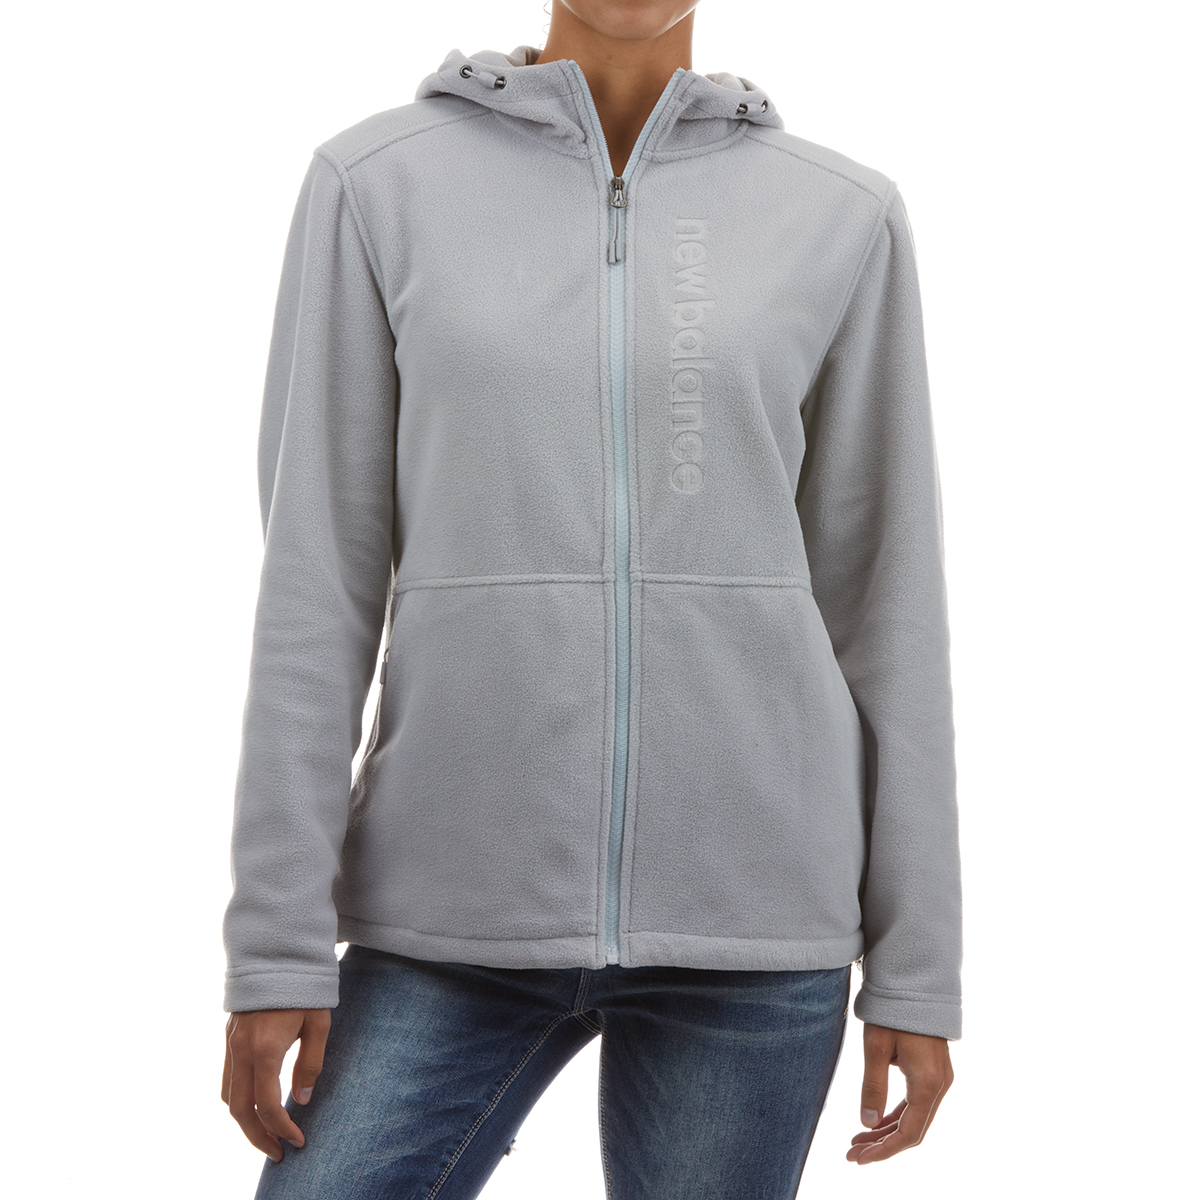 New Balance Women's Full Zip Hooded Fleece With Embossed Logo - Black, S